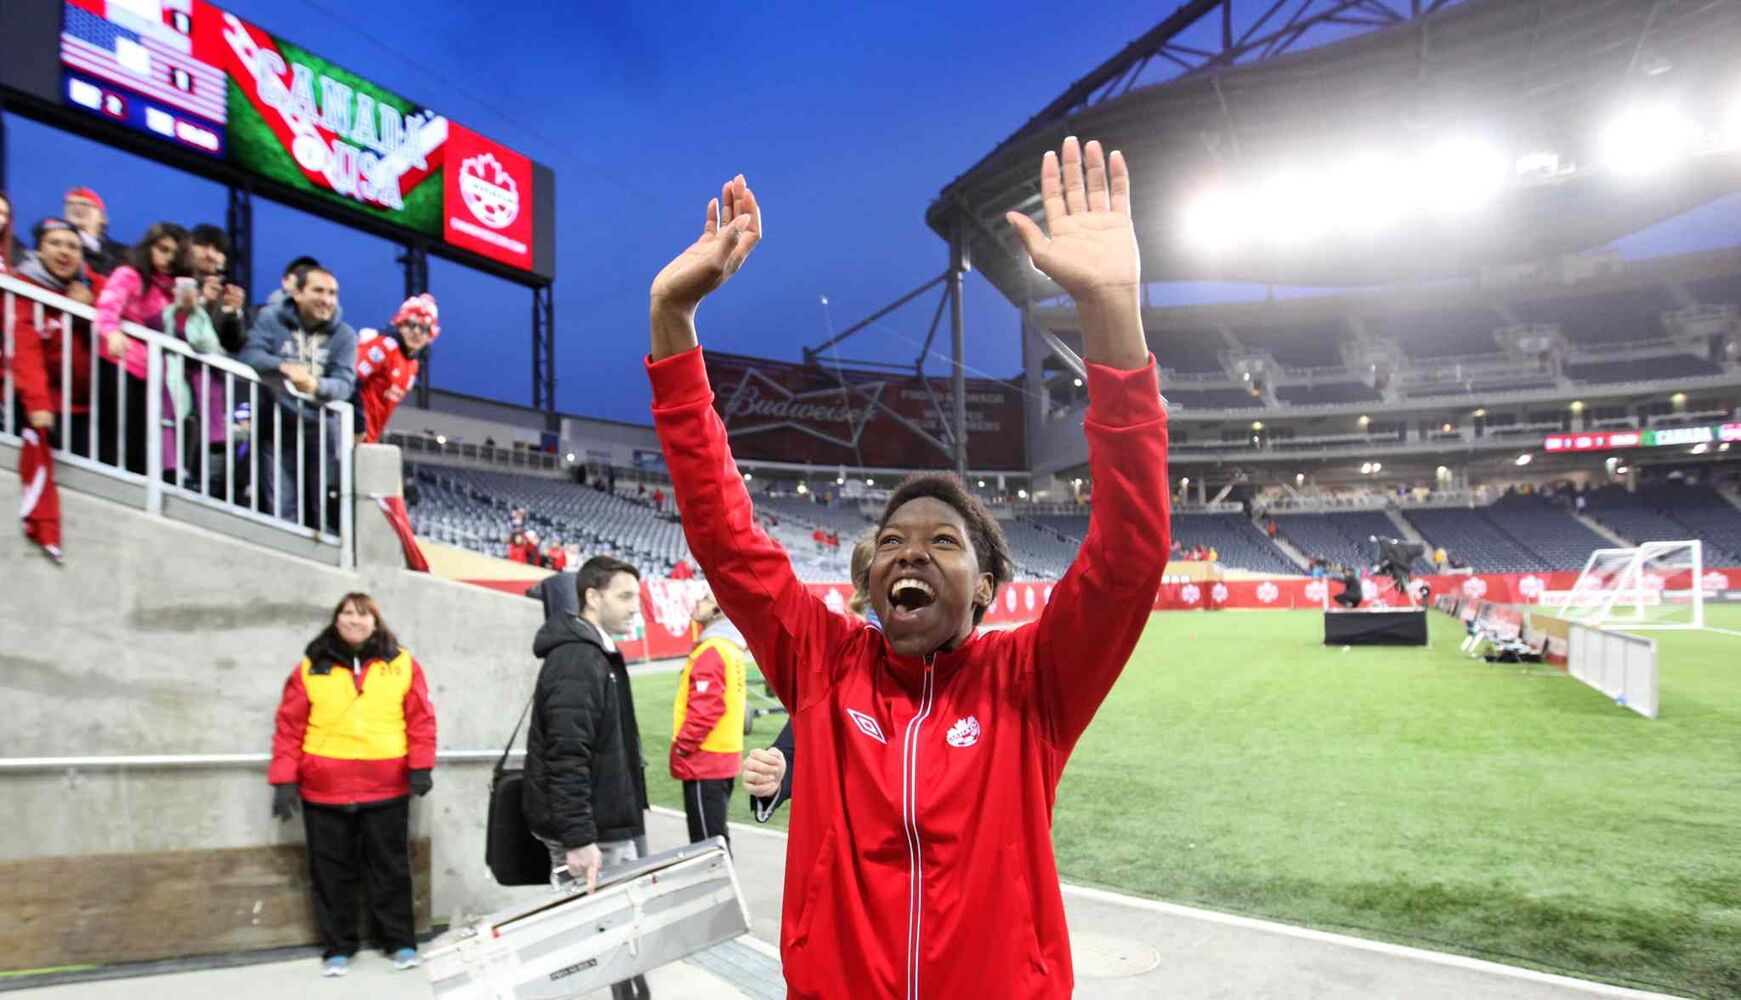 Canada's Kadeisha Buchanan waves and smiles to the crowd as she leaves the field after scoring Canada's lone goal against the U.S. in the women's international soccer match at Investors Group Field Thursday evening. The teams tied 1-1.  (Ruth Bonneville / Winnipeg Free Press)